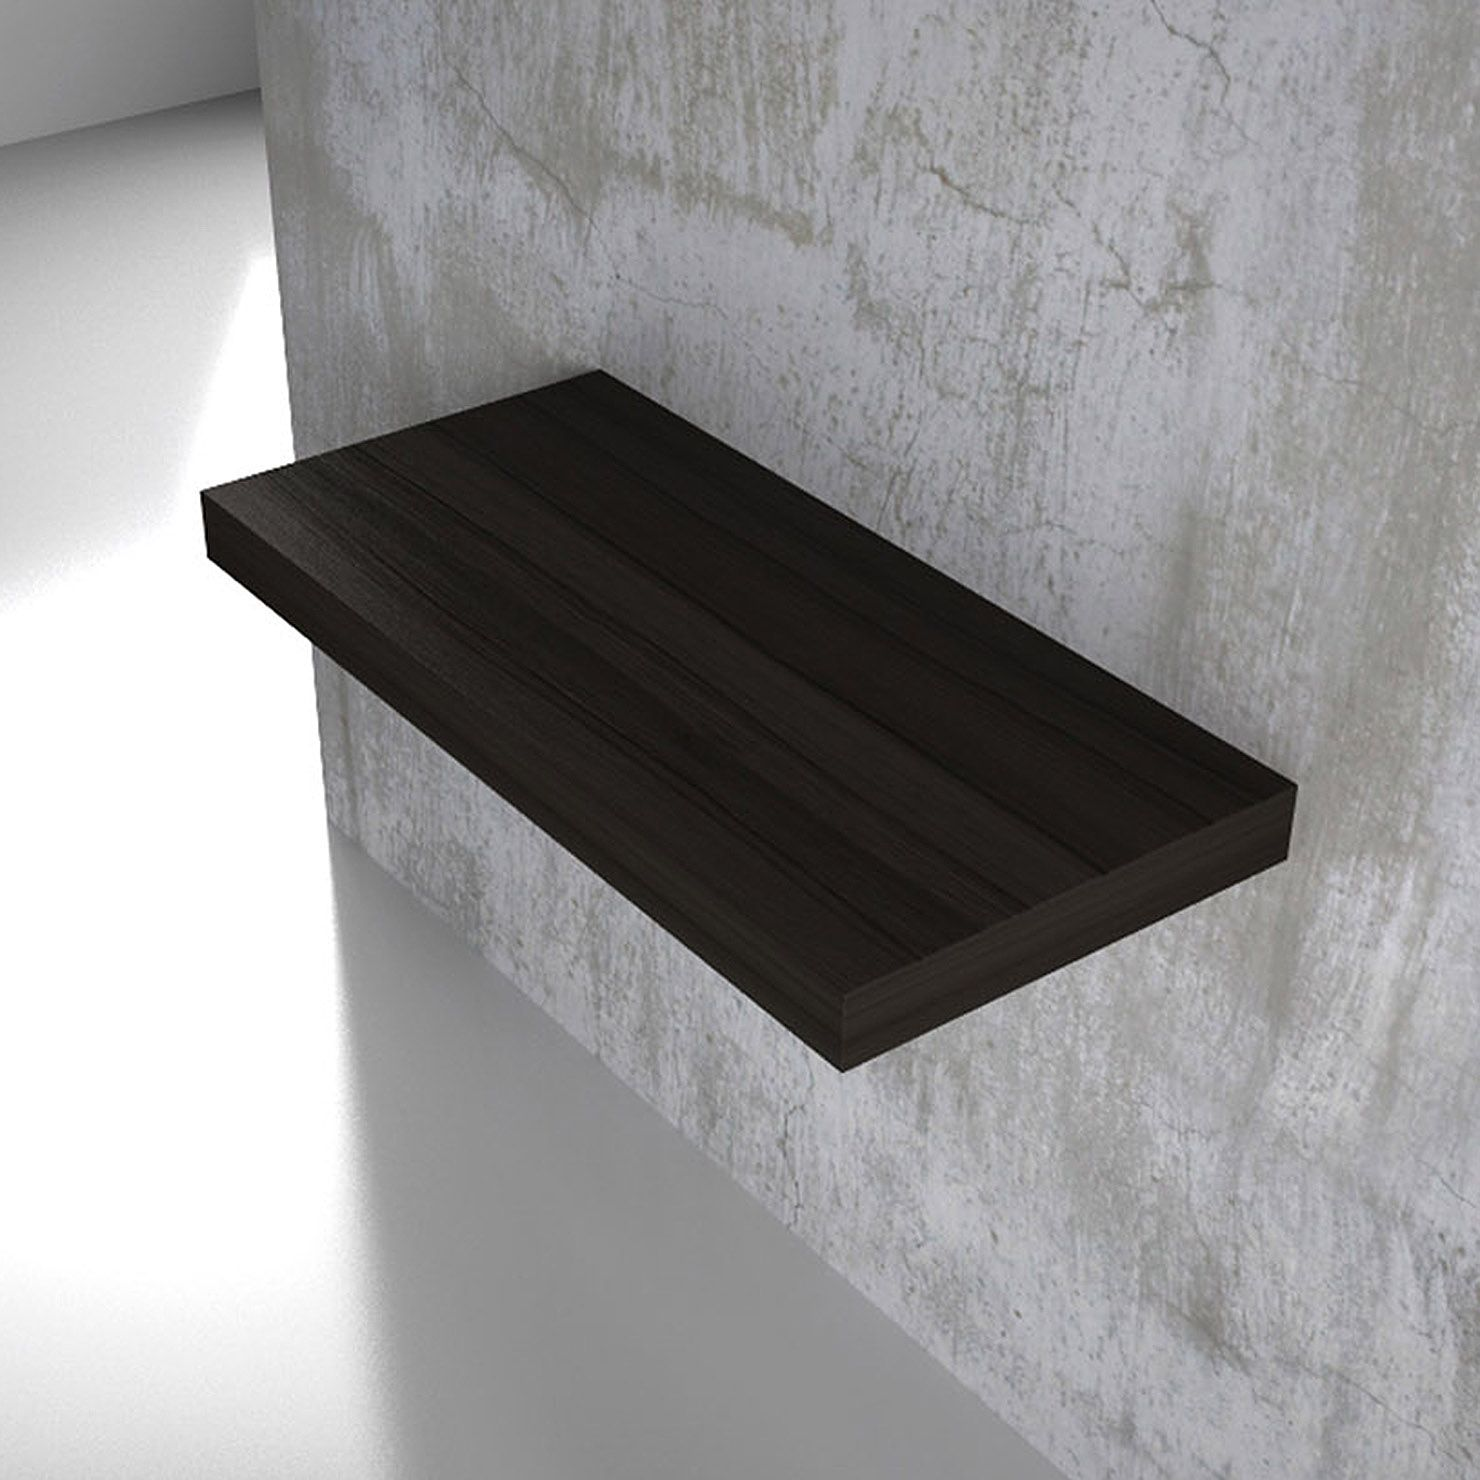 TFT Clever 78cm Wall Mounted Shelf, Stained Wenge Veneer | ACHICA